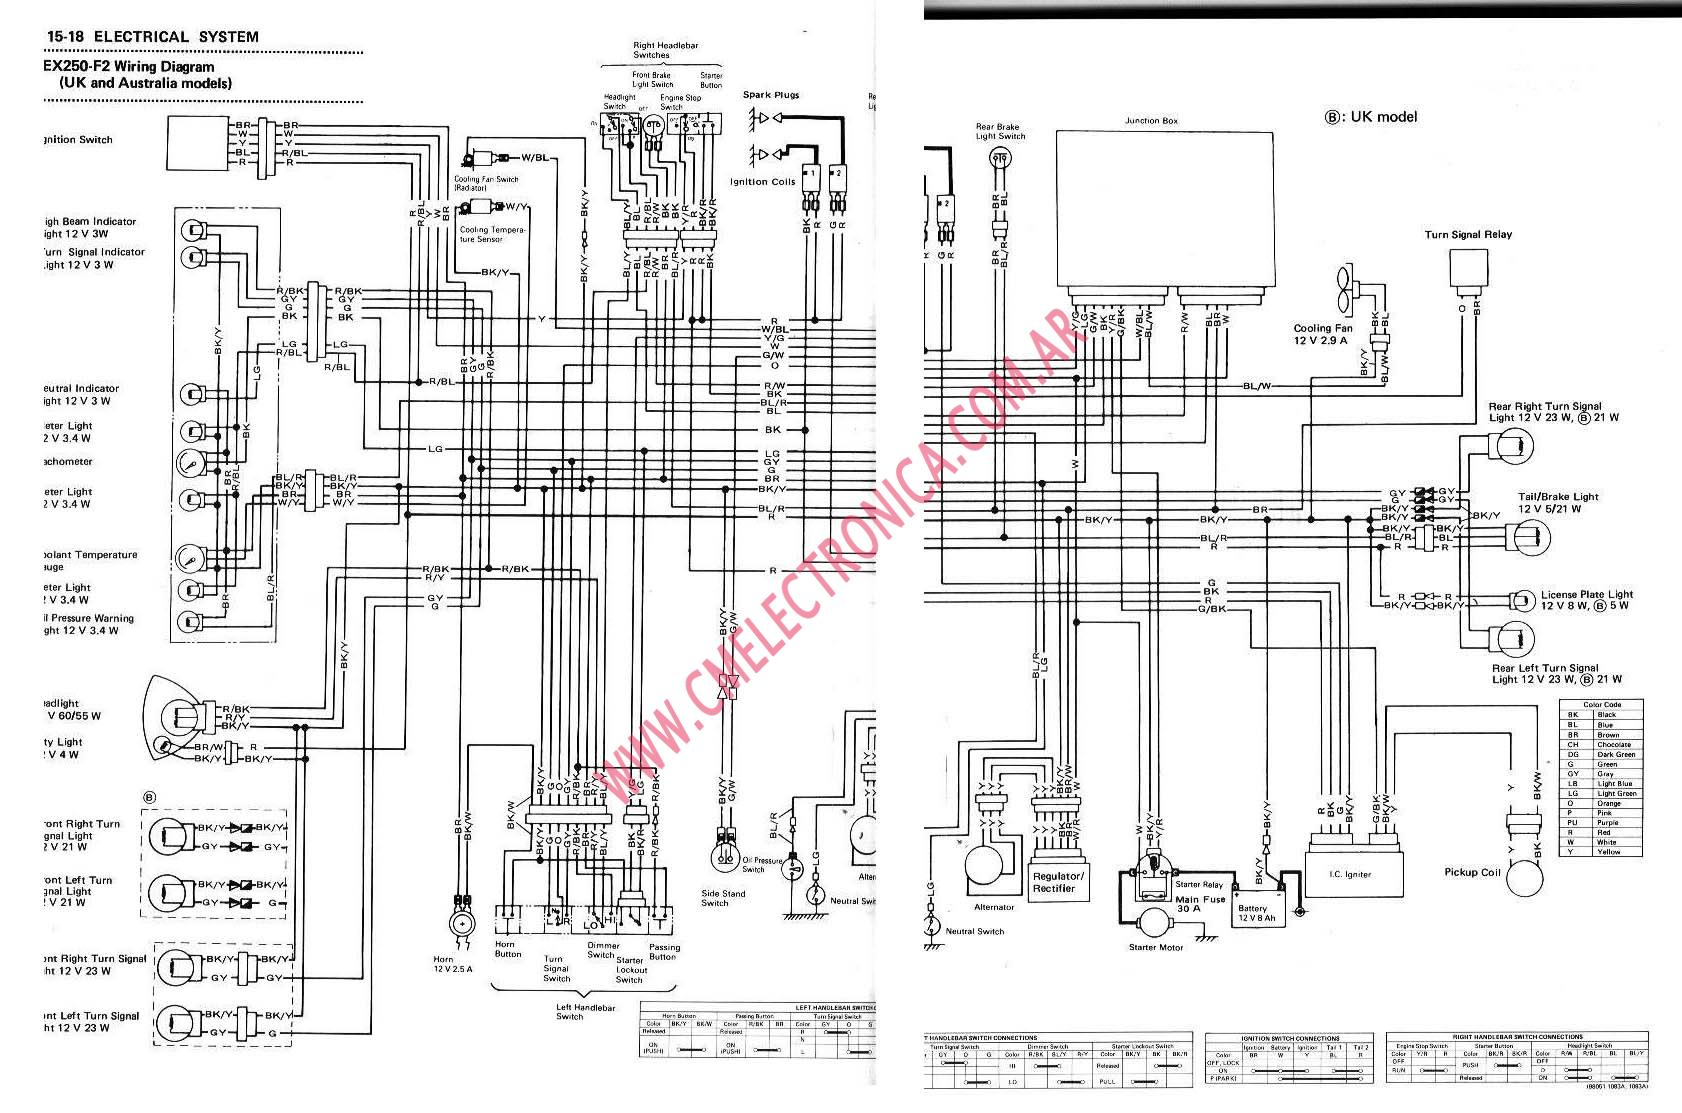 2006 Chevy Malibu Wiring Diagram moreover 1968 Mustang Wiring Diagram Vacuum Schematics as well Jaguar Xj8 Fuse Box Diagram besides Kenmore Elite Dishwasher Parts Whirlpool Cabrio Washer Manual Gas Dryer Not Heating Refrigerator In Wiring Diagram 2 further 1984 Mercedes 380sl Fuse Box. on corvette electrical diagrams